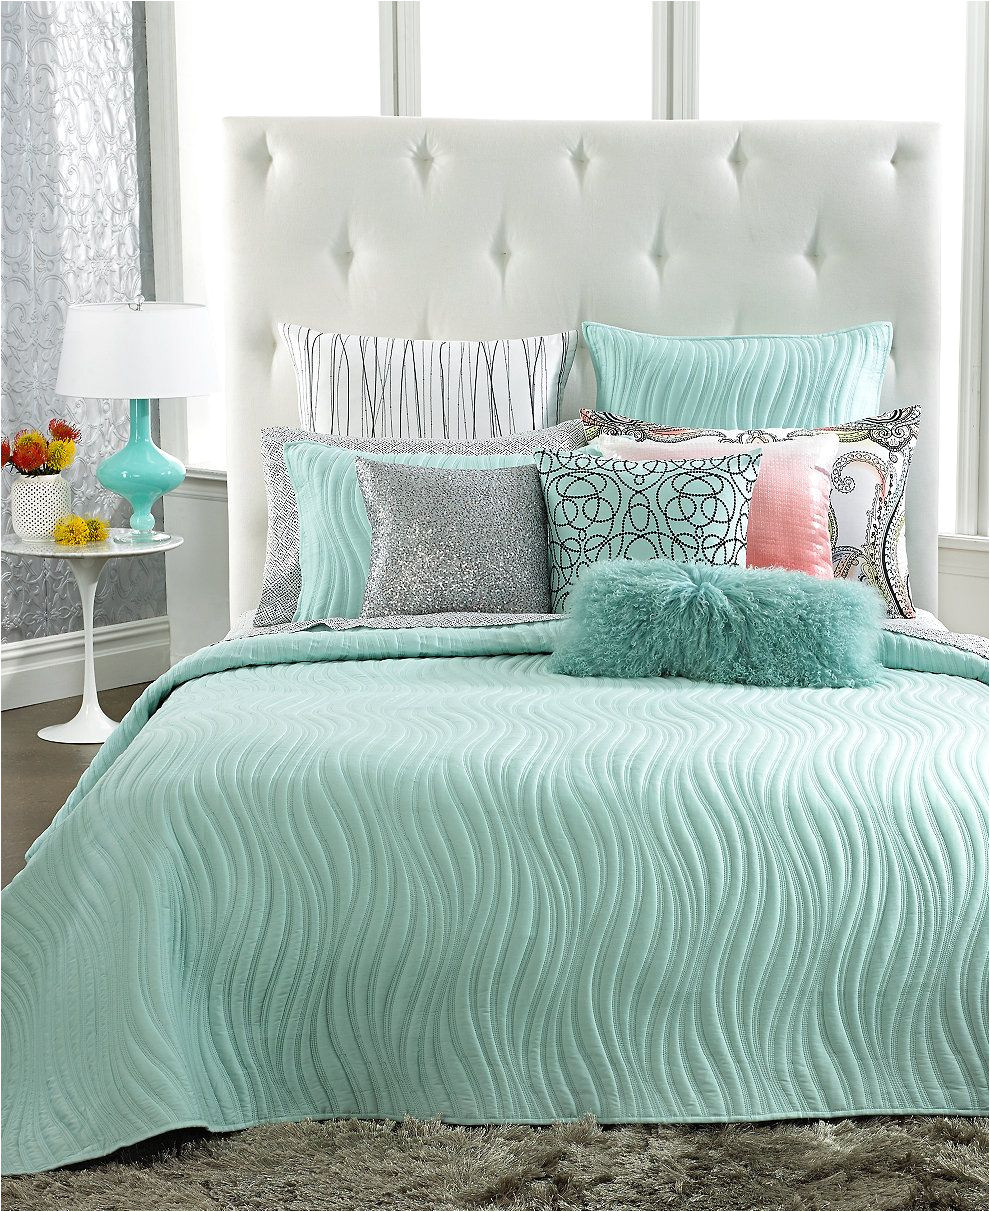 inc international concepts marni coverlet collection quilts bedspreads bed bath macy s